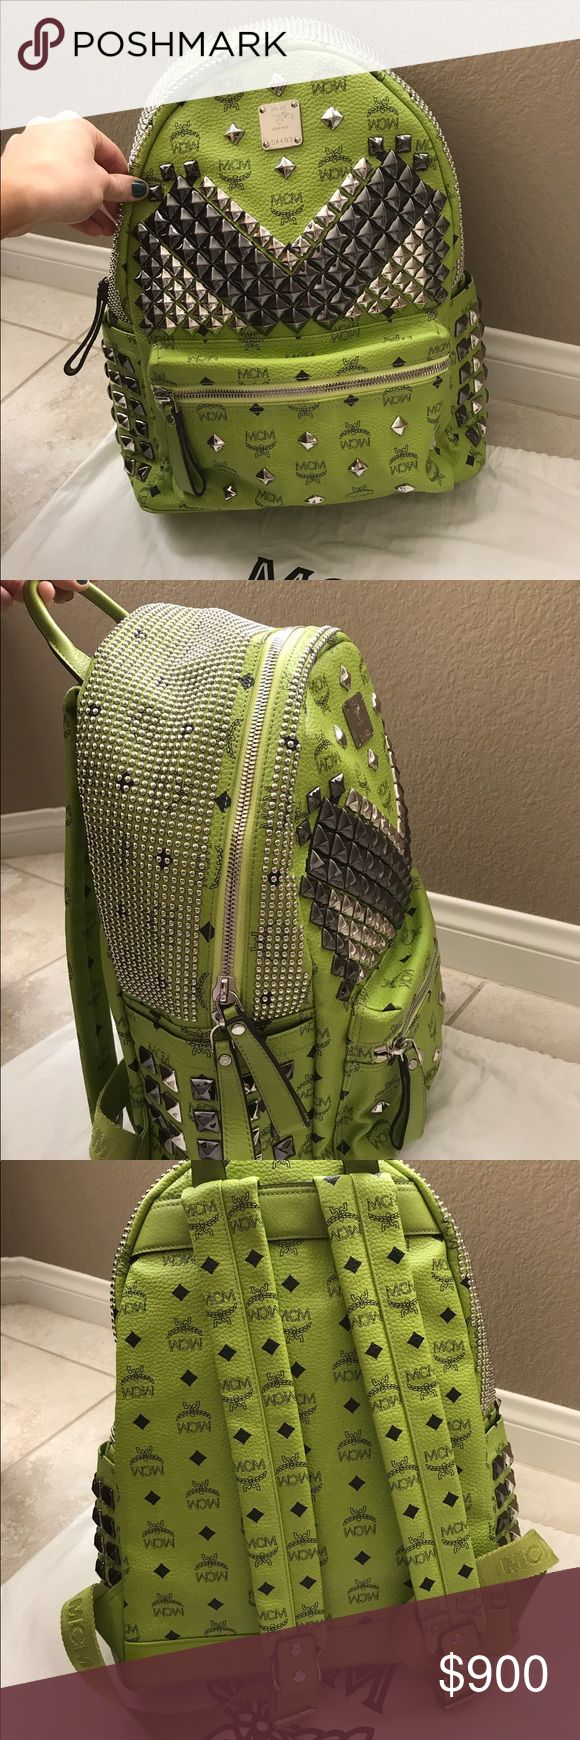 MCM lime large backpack with Silver/Grey hardware This back is awesome! It was a very limited color I have the original tags and it listed for $1570.00 before tax it's in great condition some of the metal still has plastic on it! I'm letting it go for a very good price and I literally wore it like twice it's in really good shape I am pregnant again and need the cash so I'm selling it  NO Trades! I have original tags the  dust bag and gift receipt and I have more pics if you need them emailed…